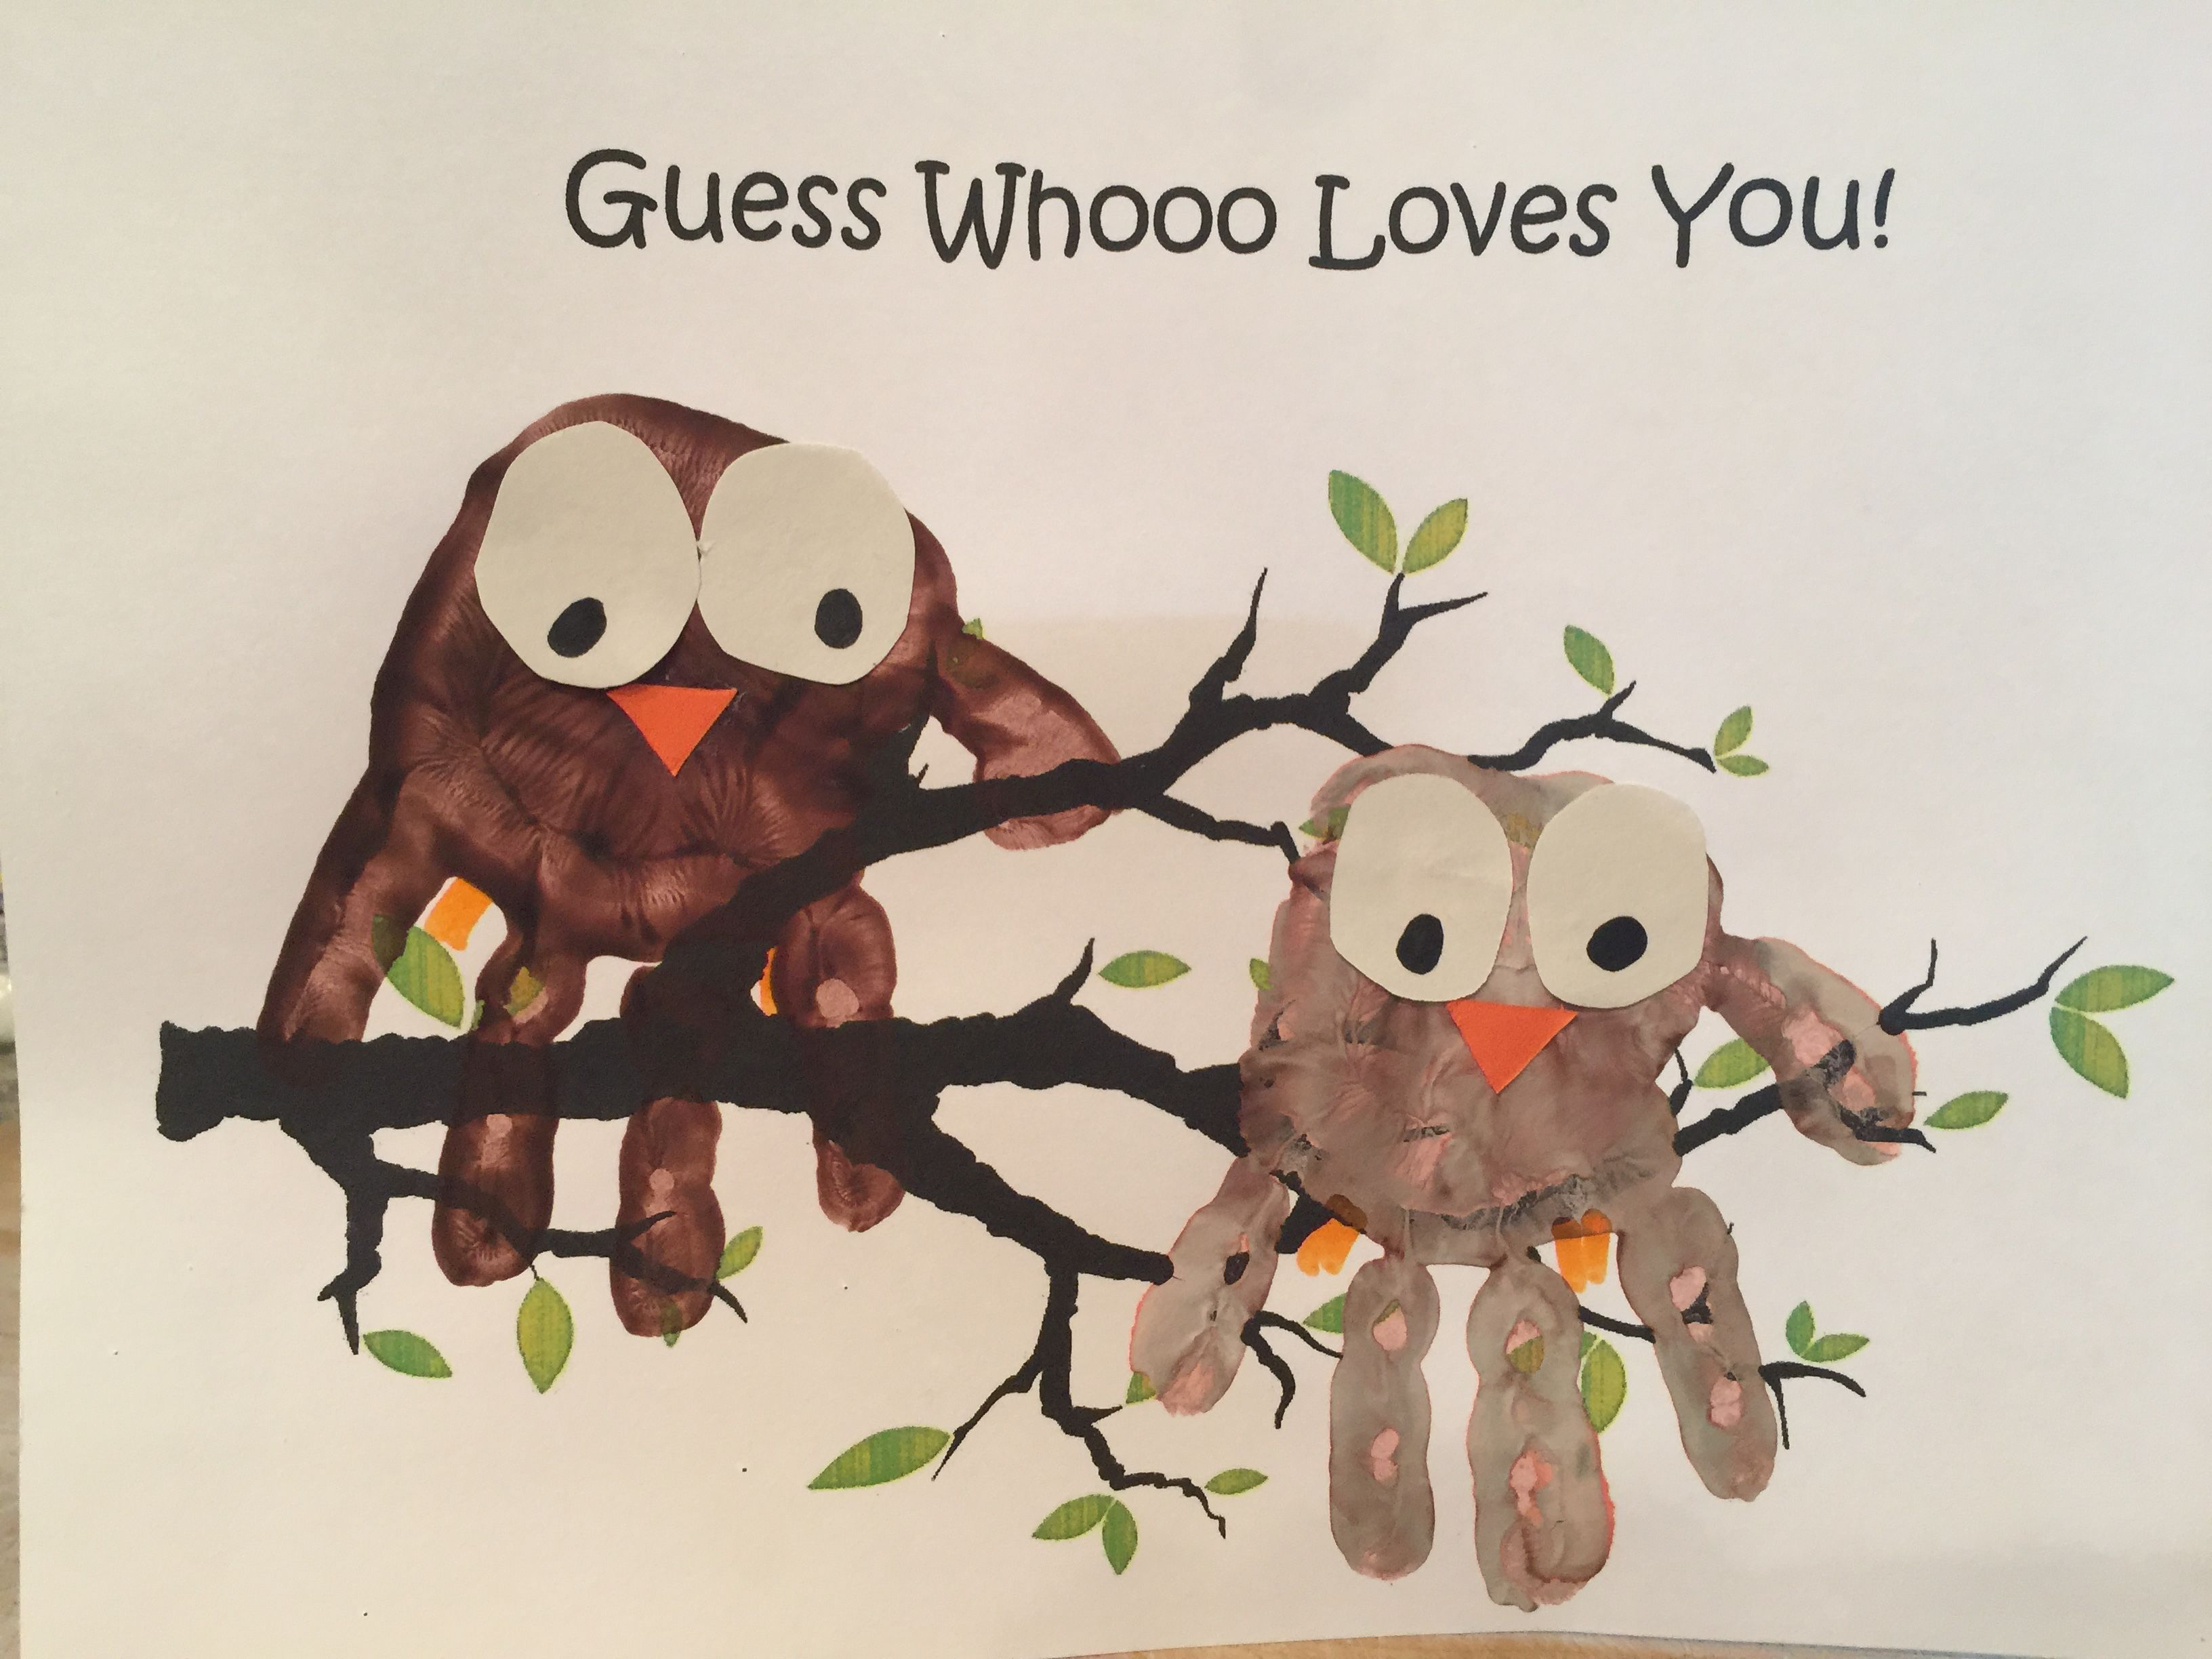 Pin By Melinda Coldwell On Preschool Ideas Pinterest Crafts For